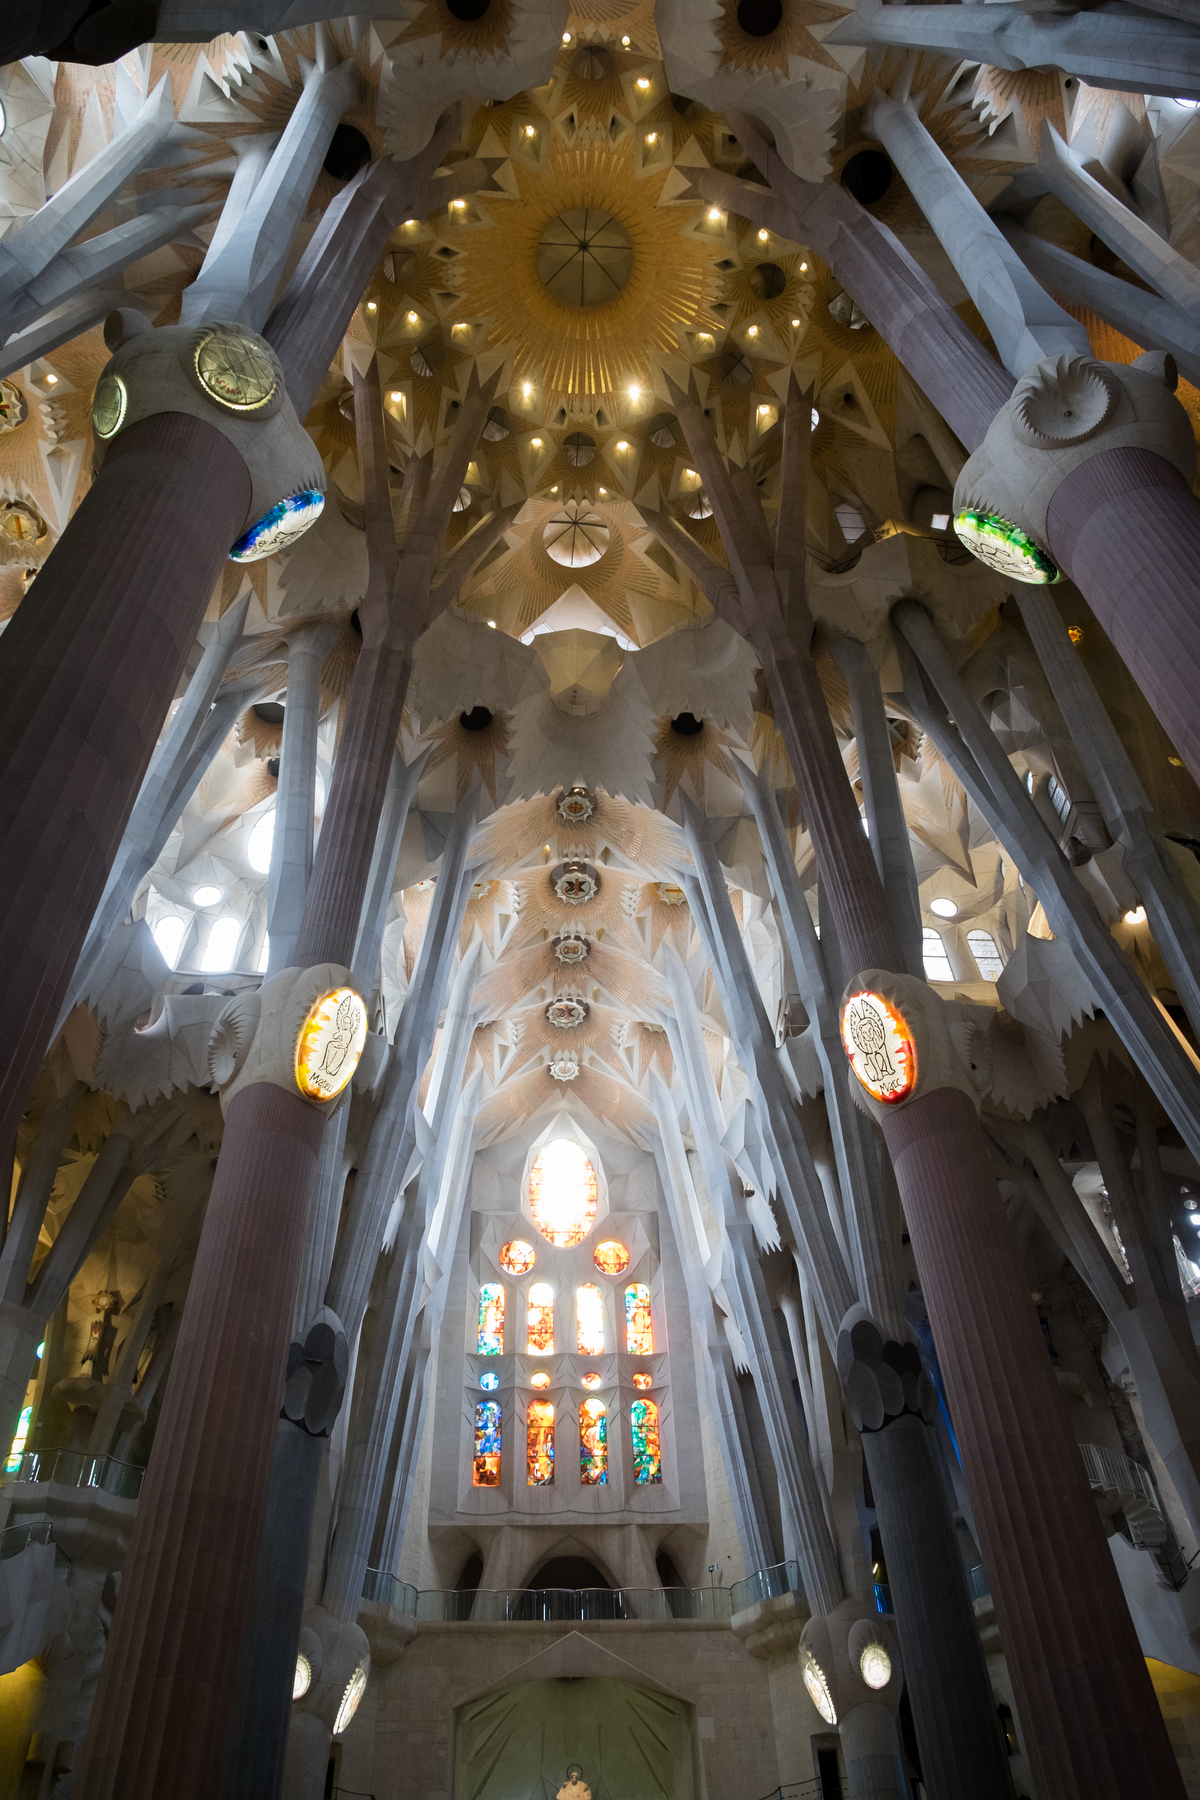 Inside La Sagrada Familia where the tops of the pillars were designs to look like trees branching out.